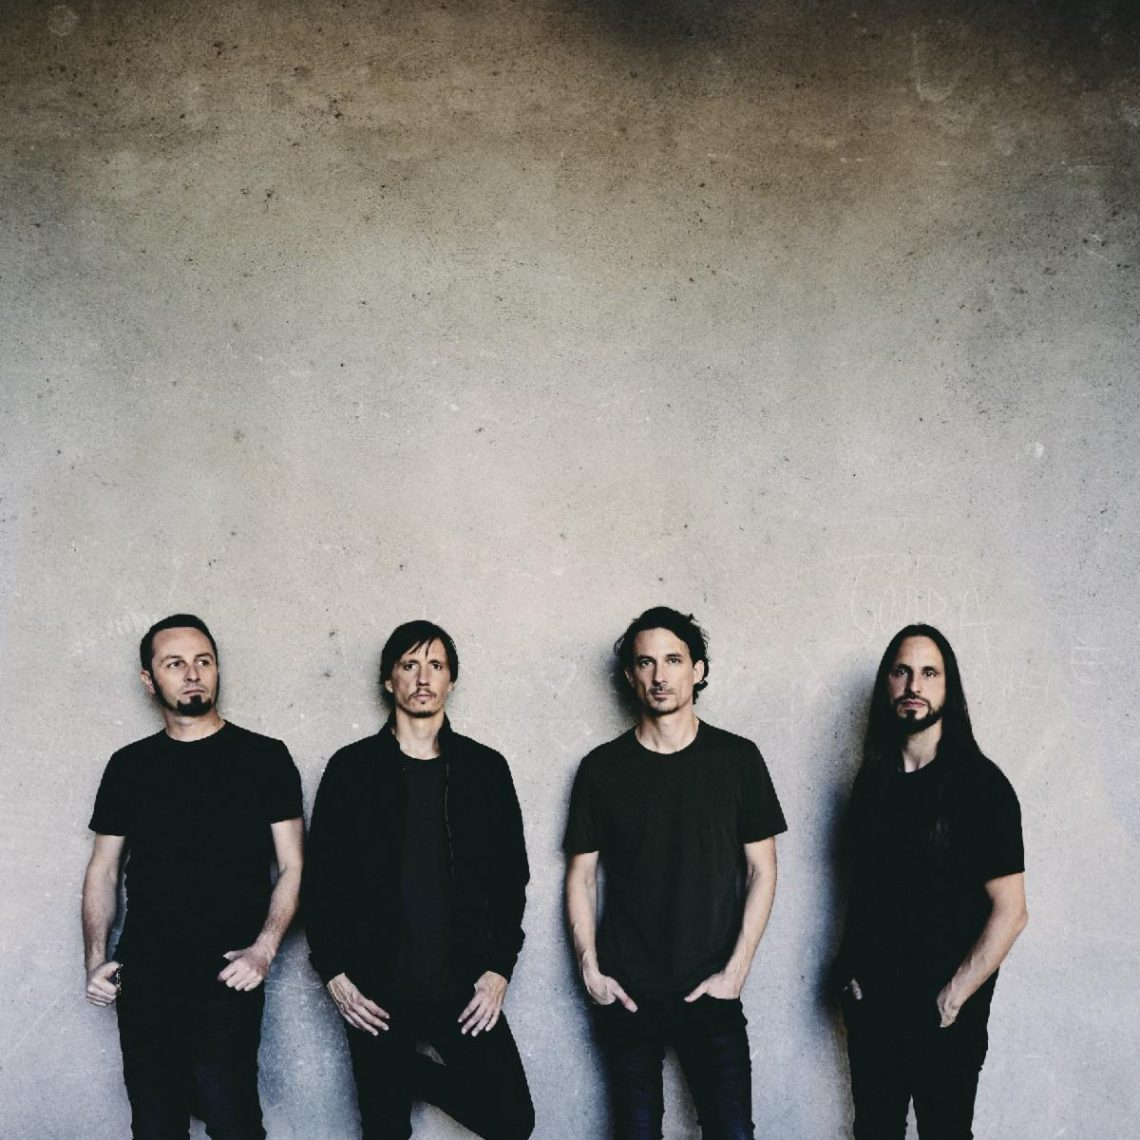 GOJIRA to debut stream of Live At Red Rocks concert on May 20 for 24 hours only